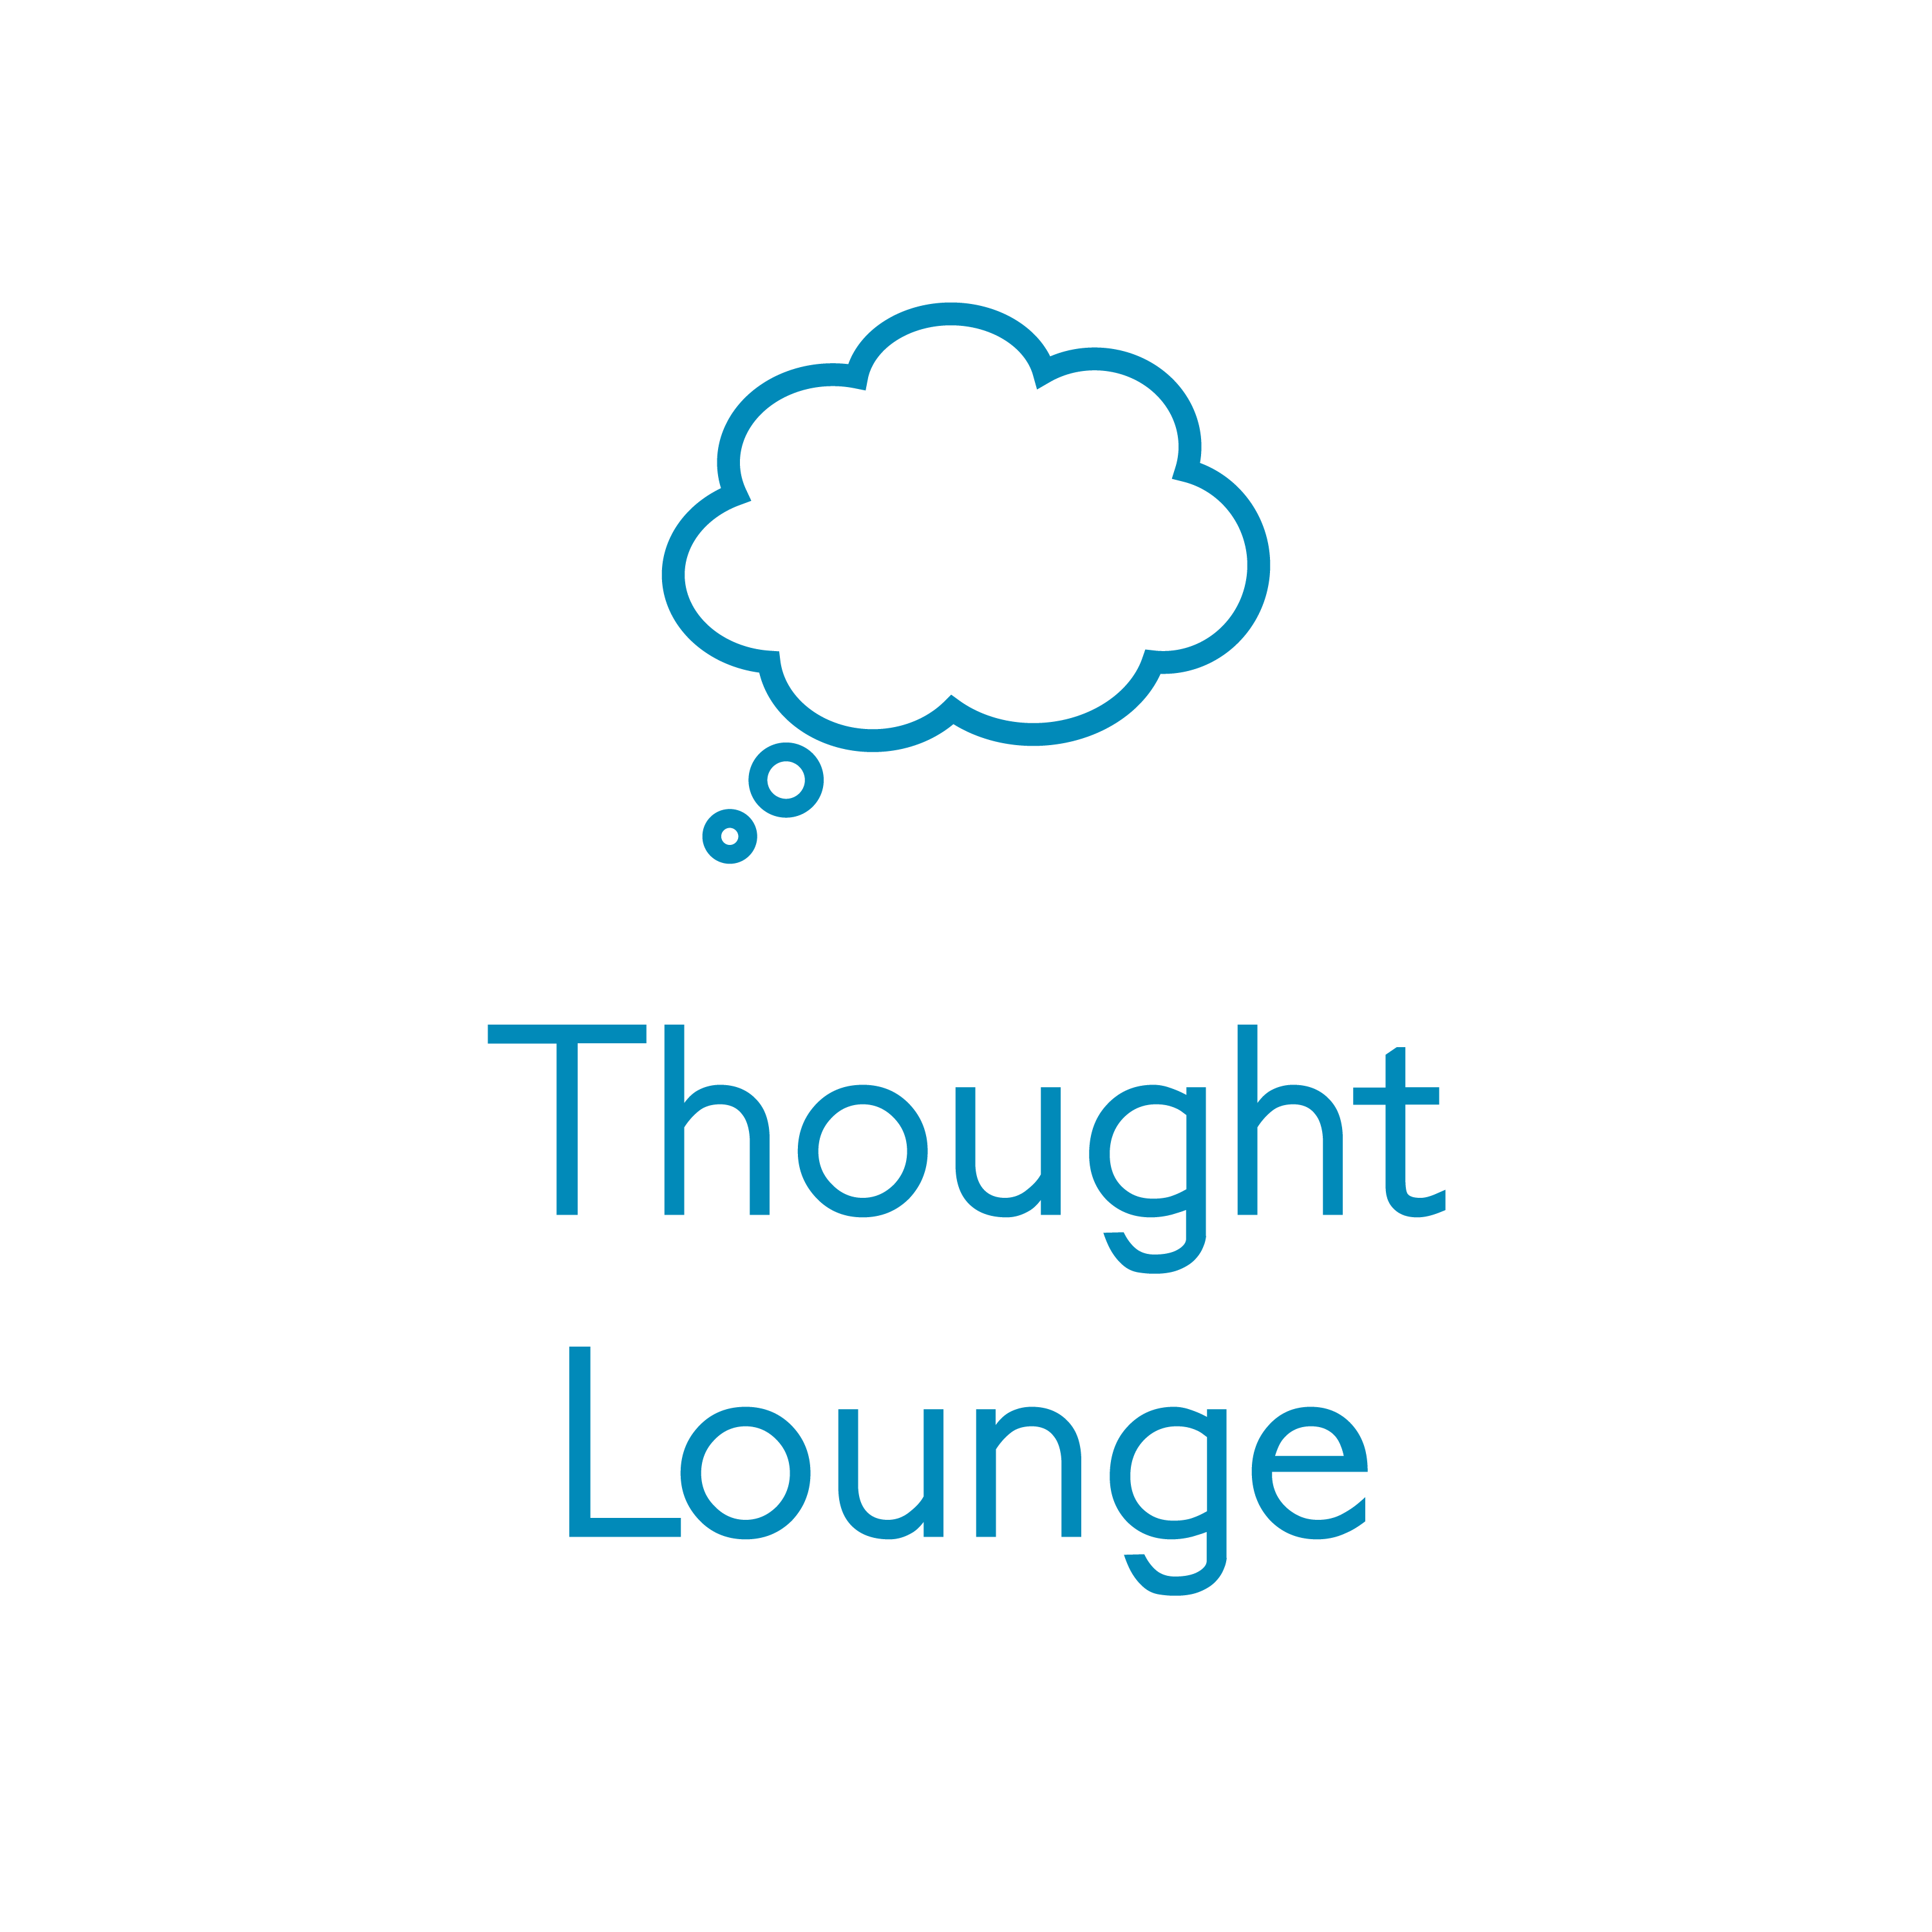 Thought Lounge Logo